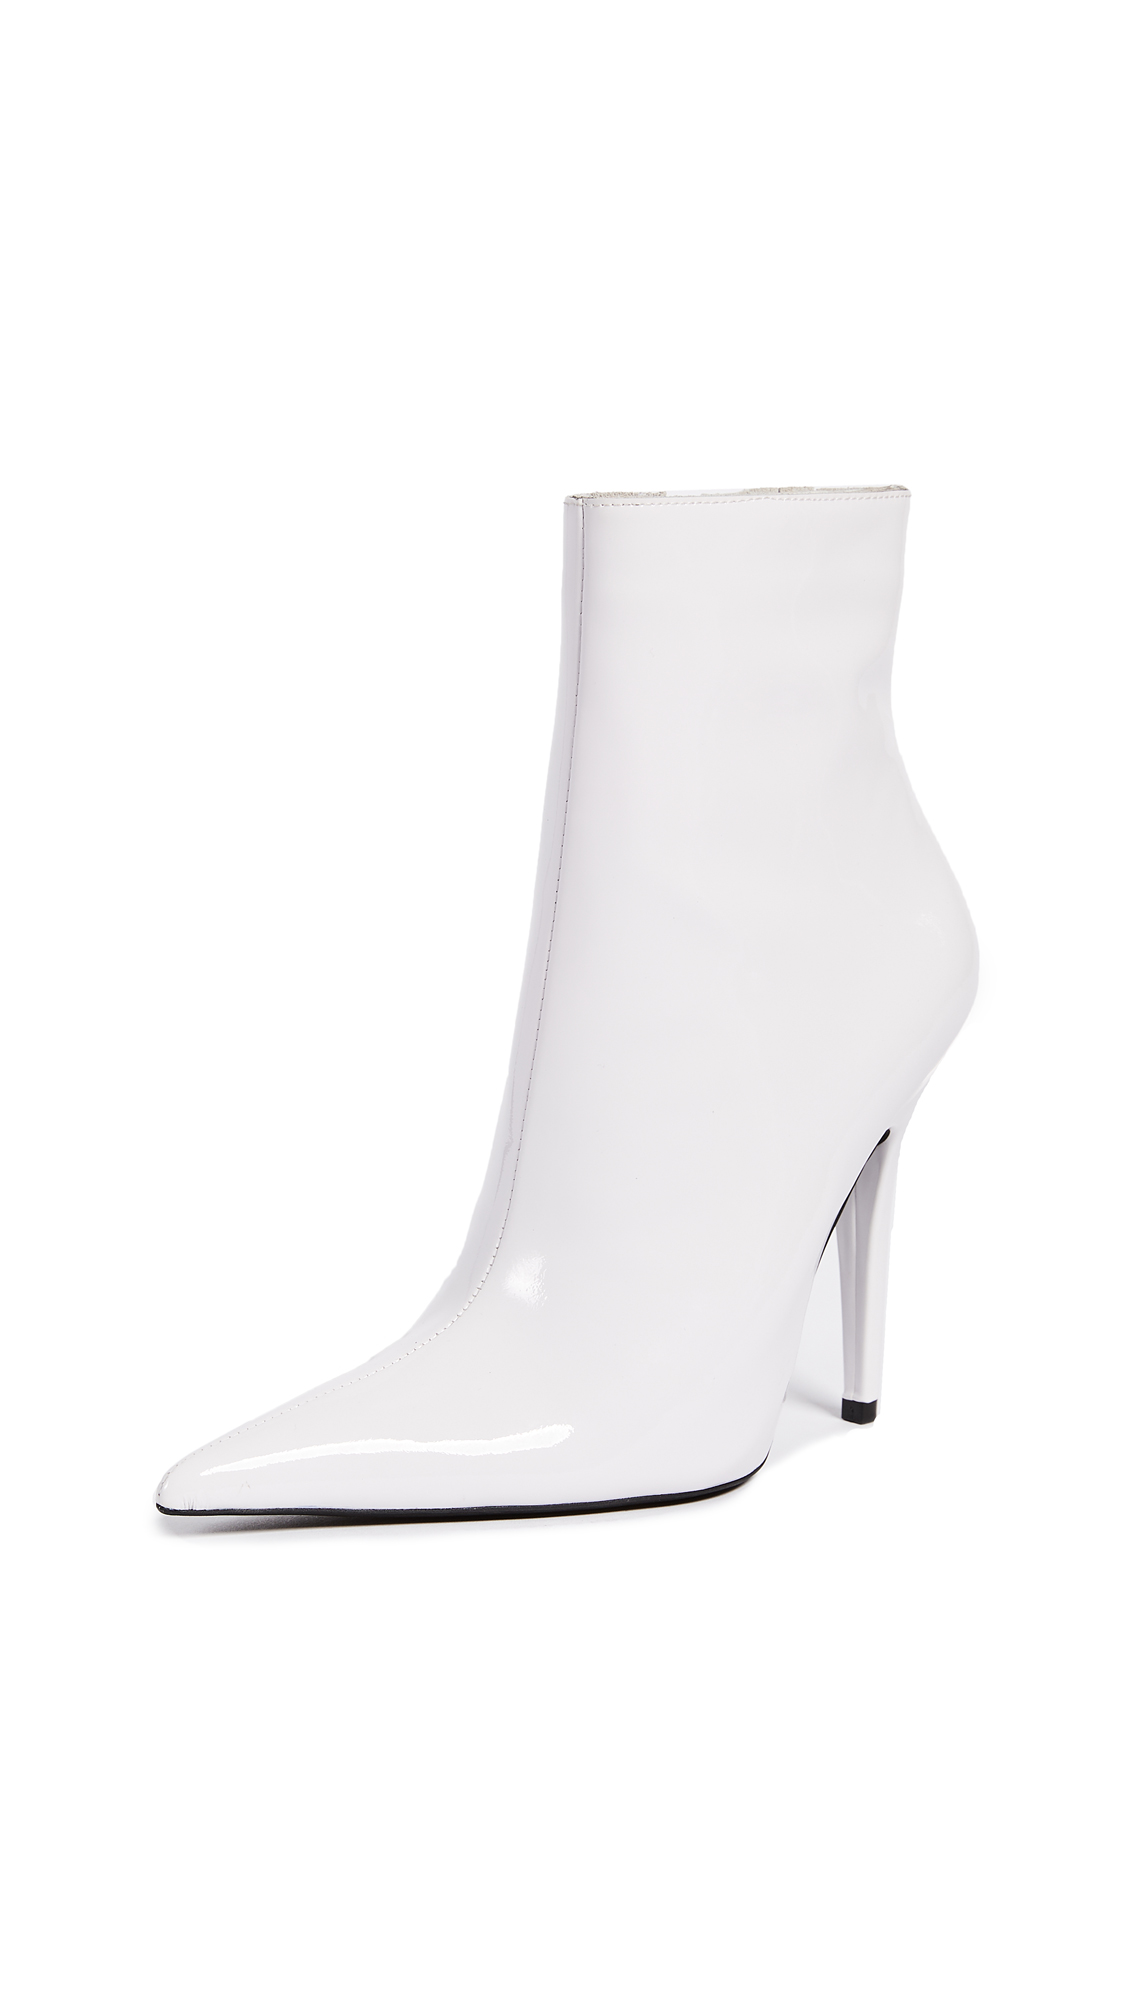 Jeffrey Campbell Vedette Point Toe Booties - White